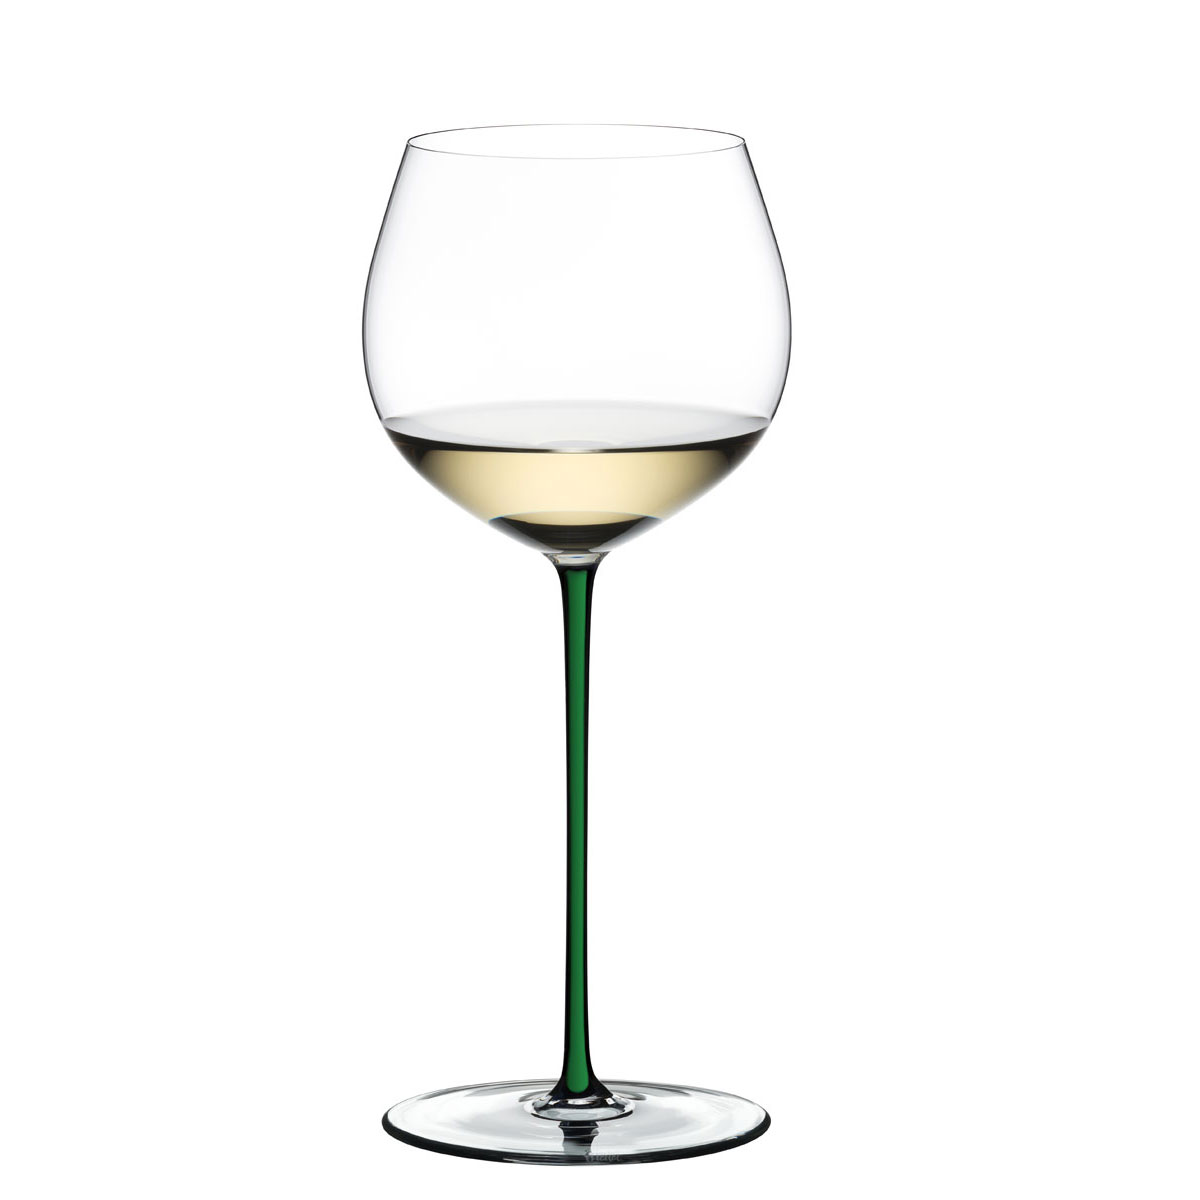 Riedel Fatto A Mano, Oaked Chardonnay Crystal Wine Glass, Green